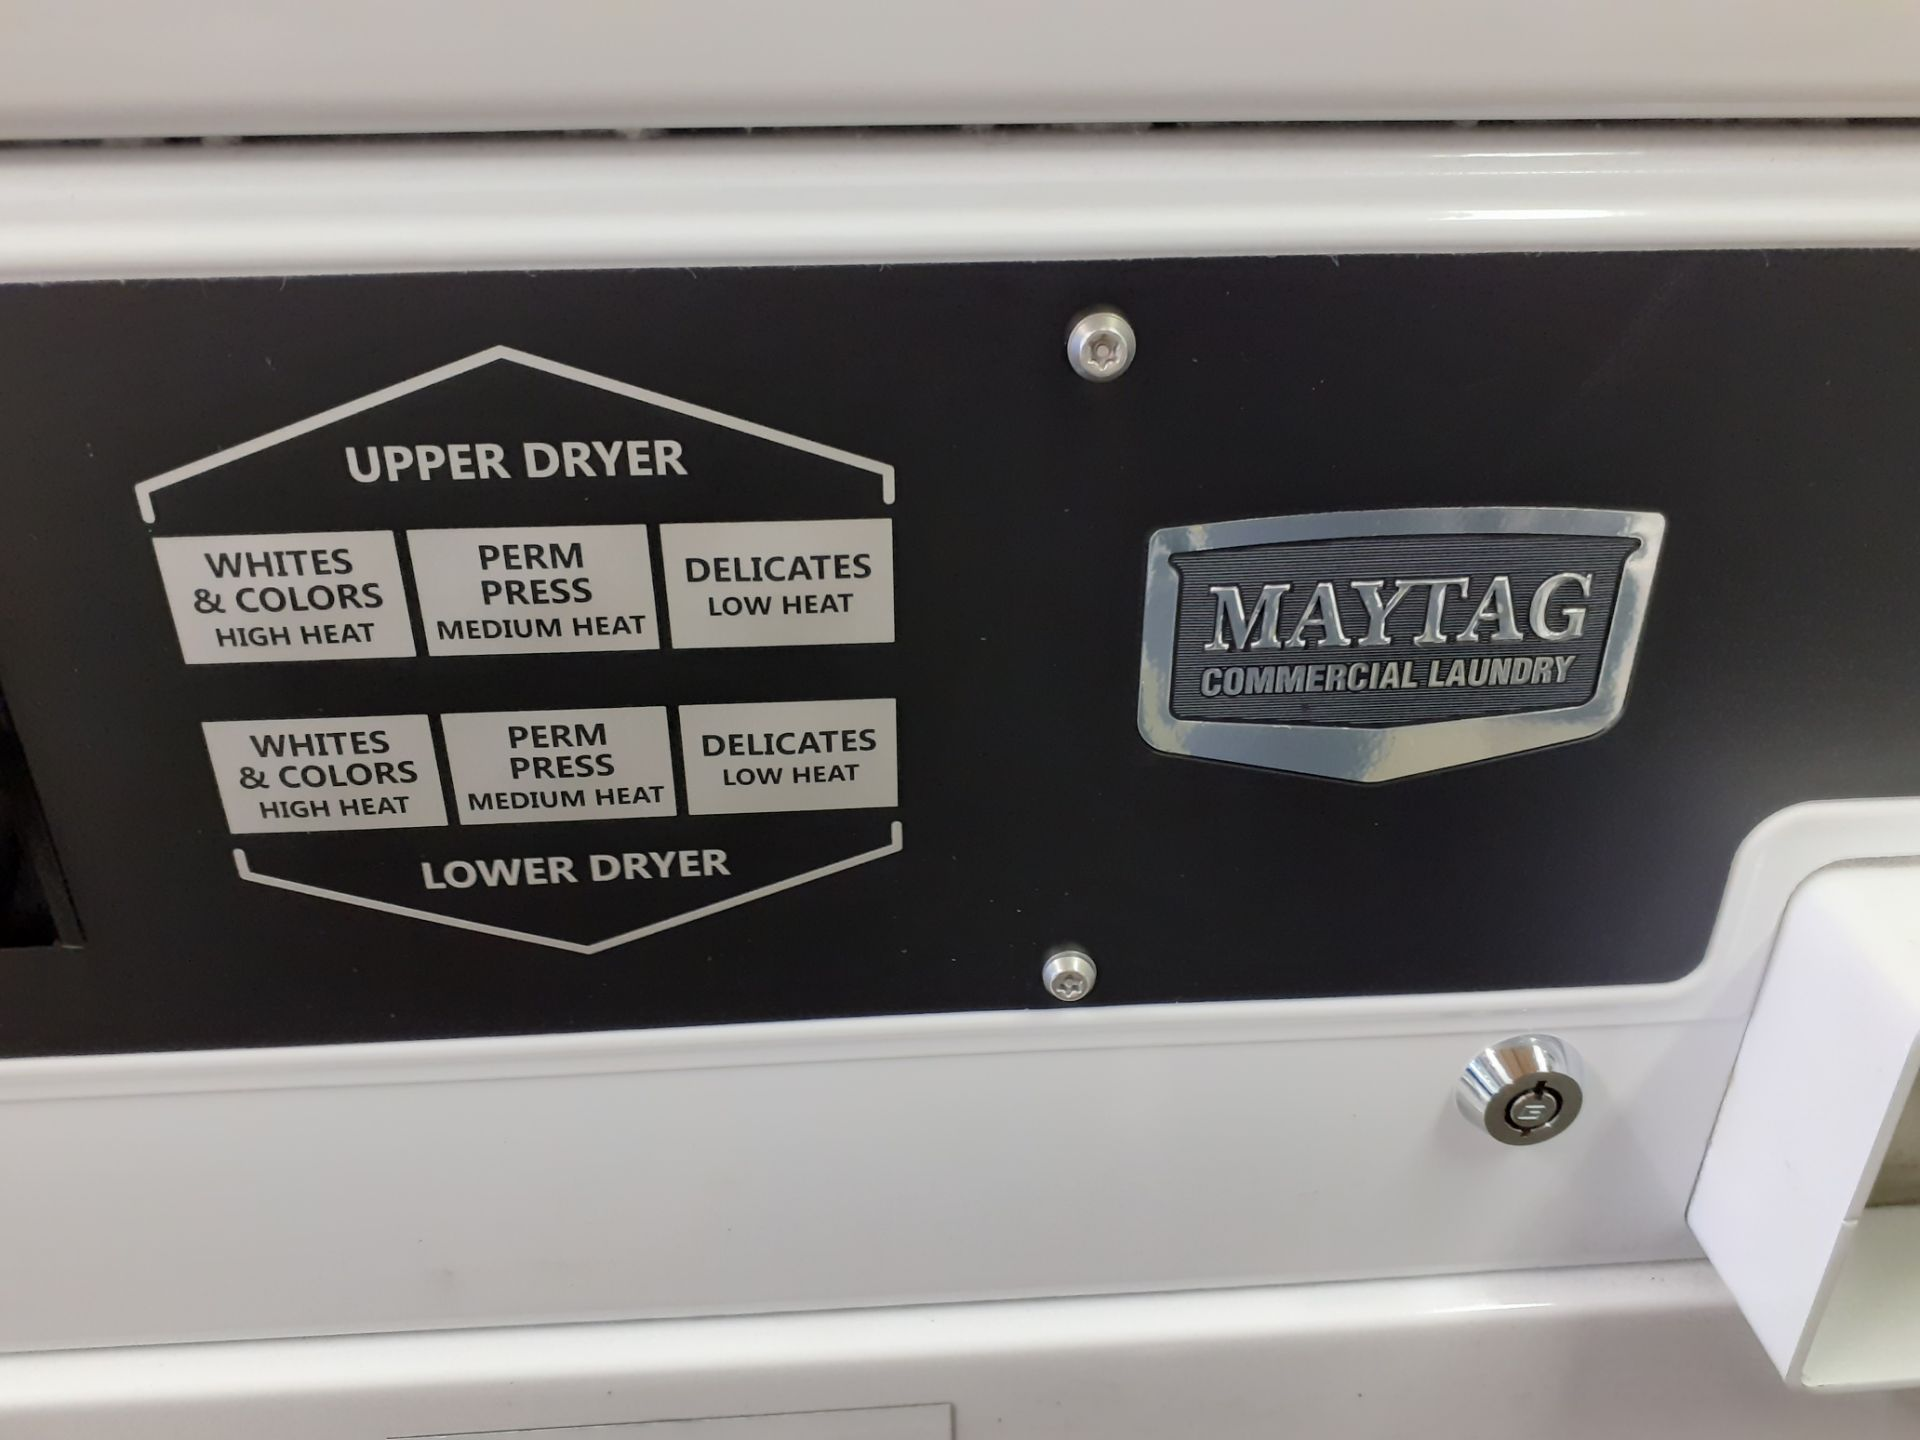 Maytag Two Tier Electric Tumble Dryer, 25 Amp, vented to atmosphere - Image 2 of 2